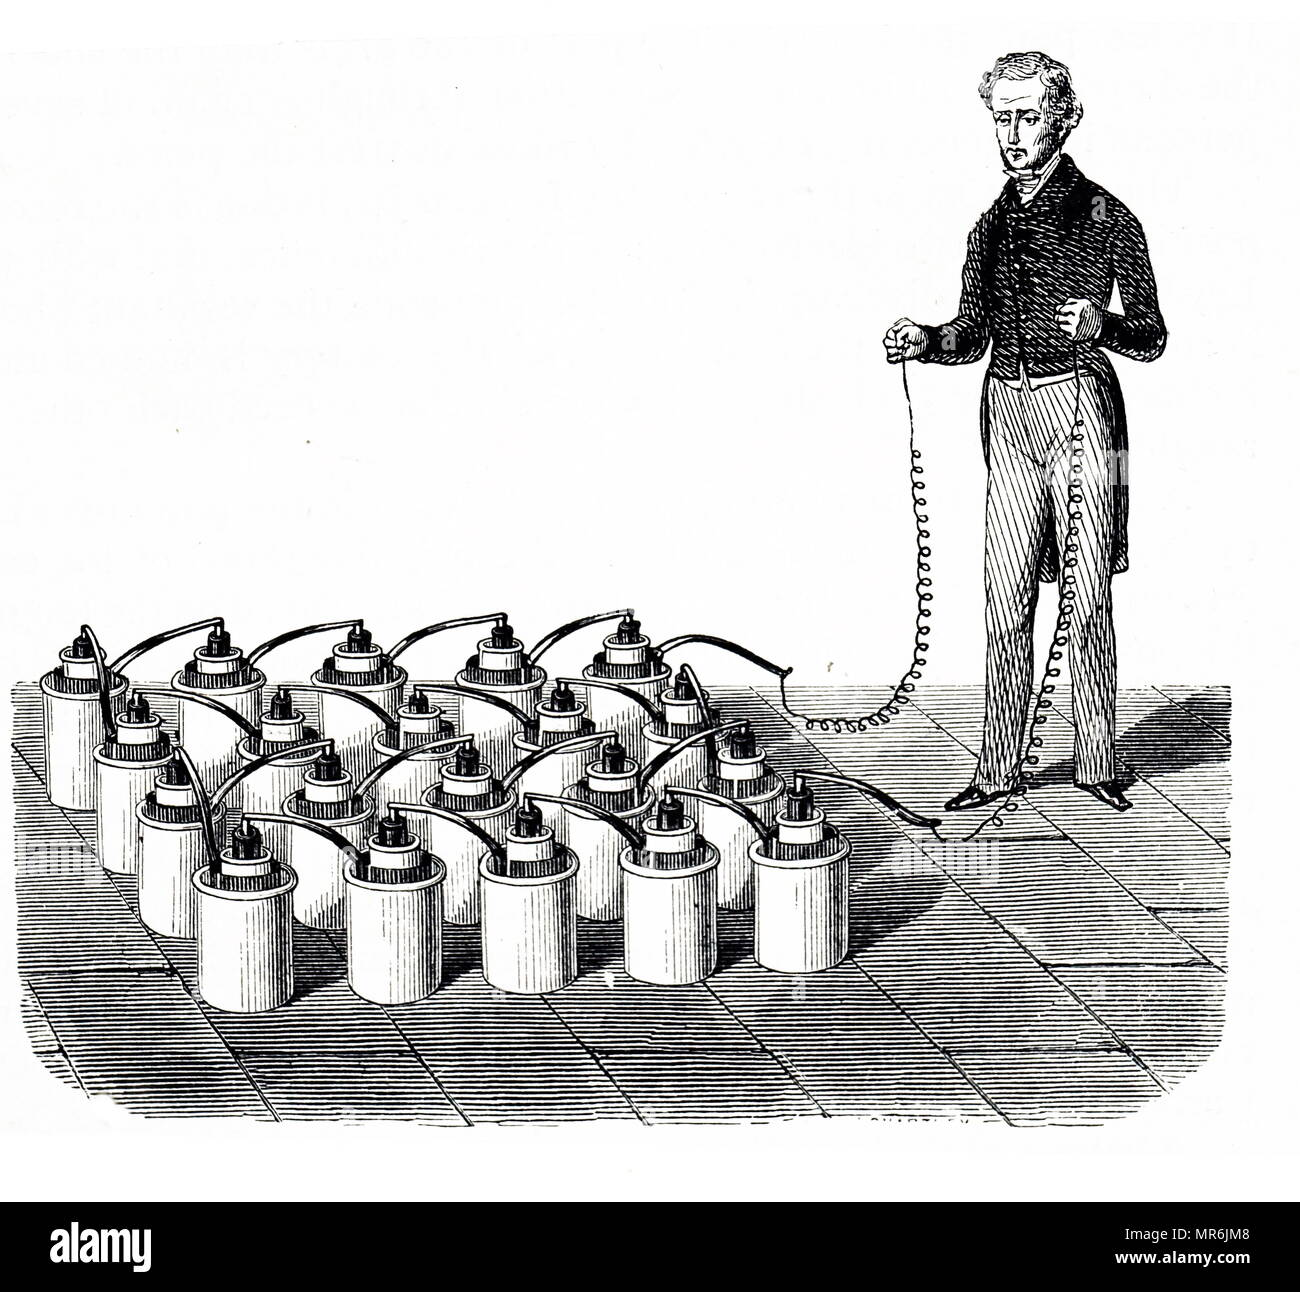 Engraving depicting a battery of twenty cells used to give therapeutic shocks. Dated 19th century - Stock Image